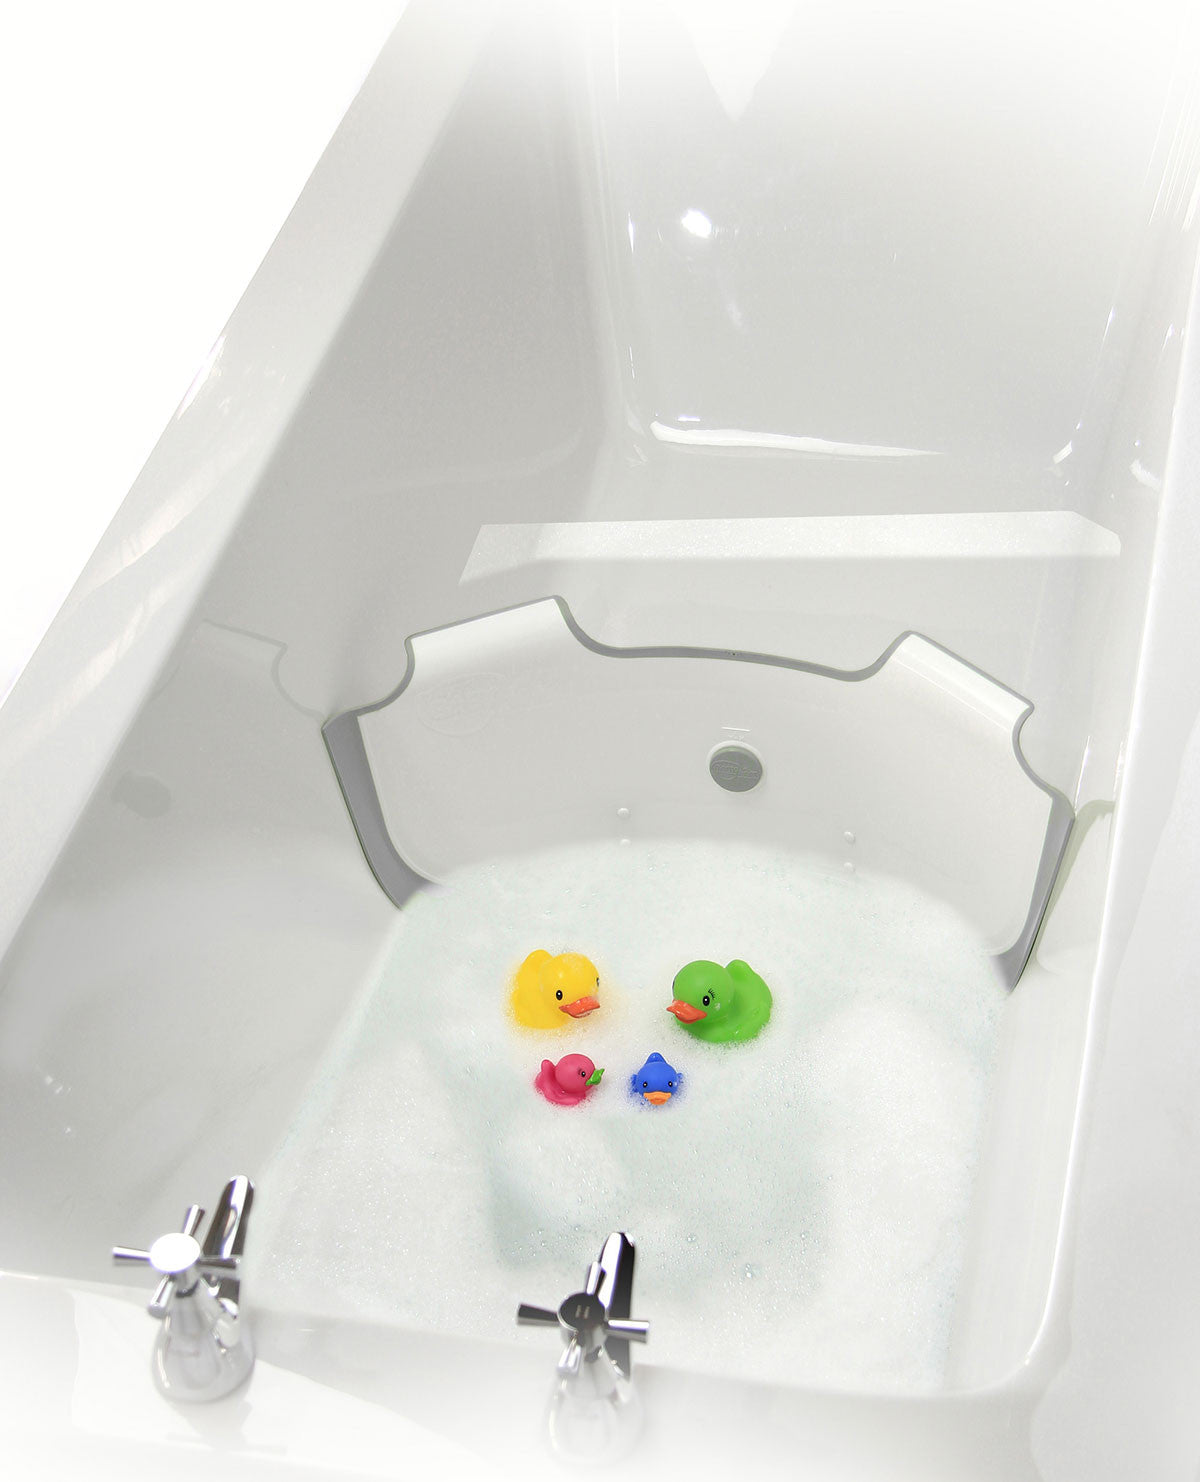 Turn Your Family Tub Into a Baby Bathtub | BabyDam® Bathtub Divider